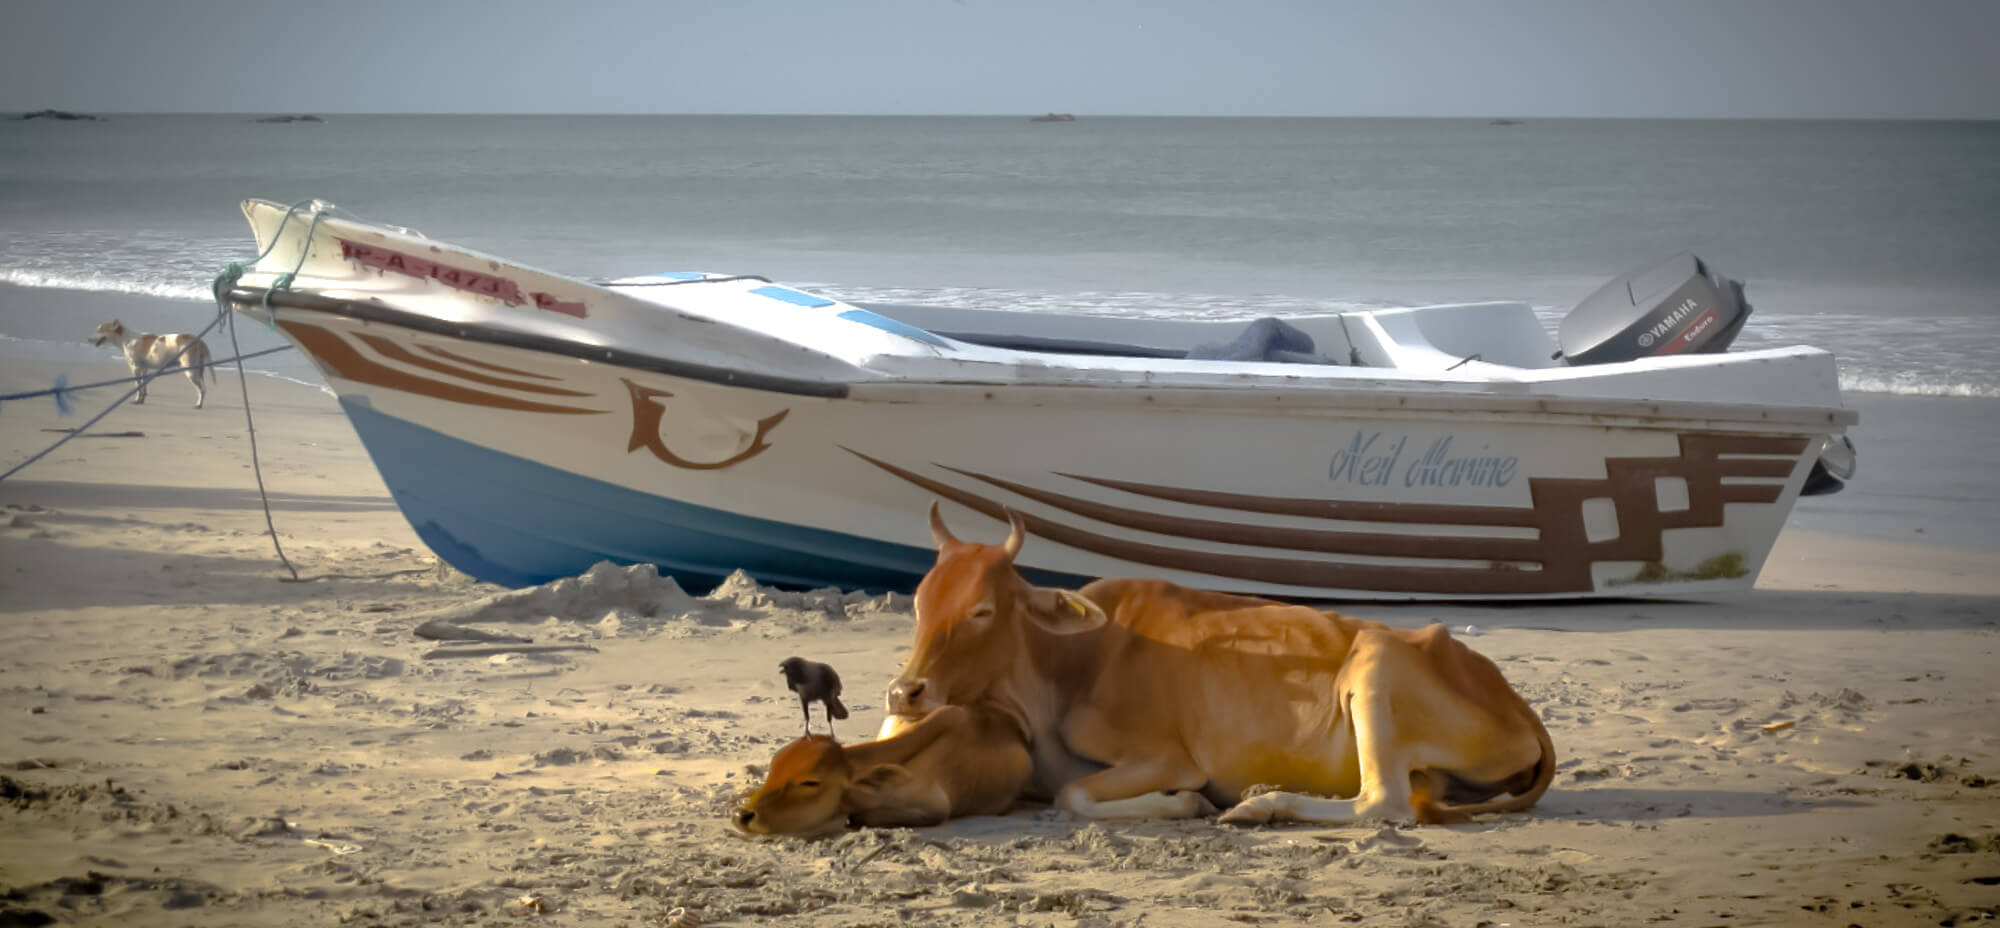 Cows sleeping on a sandy beach